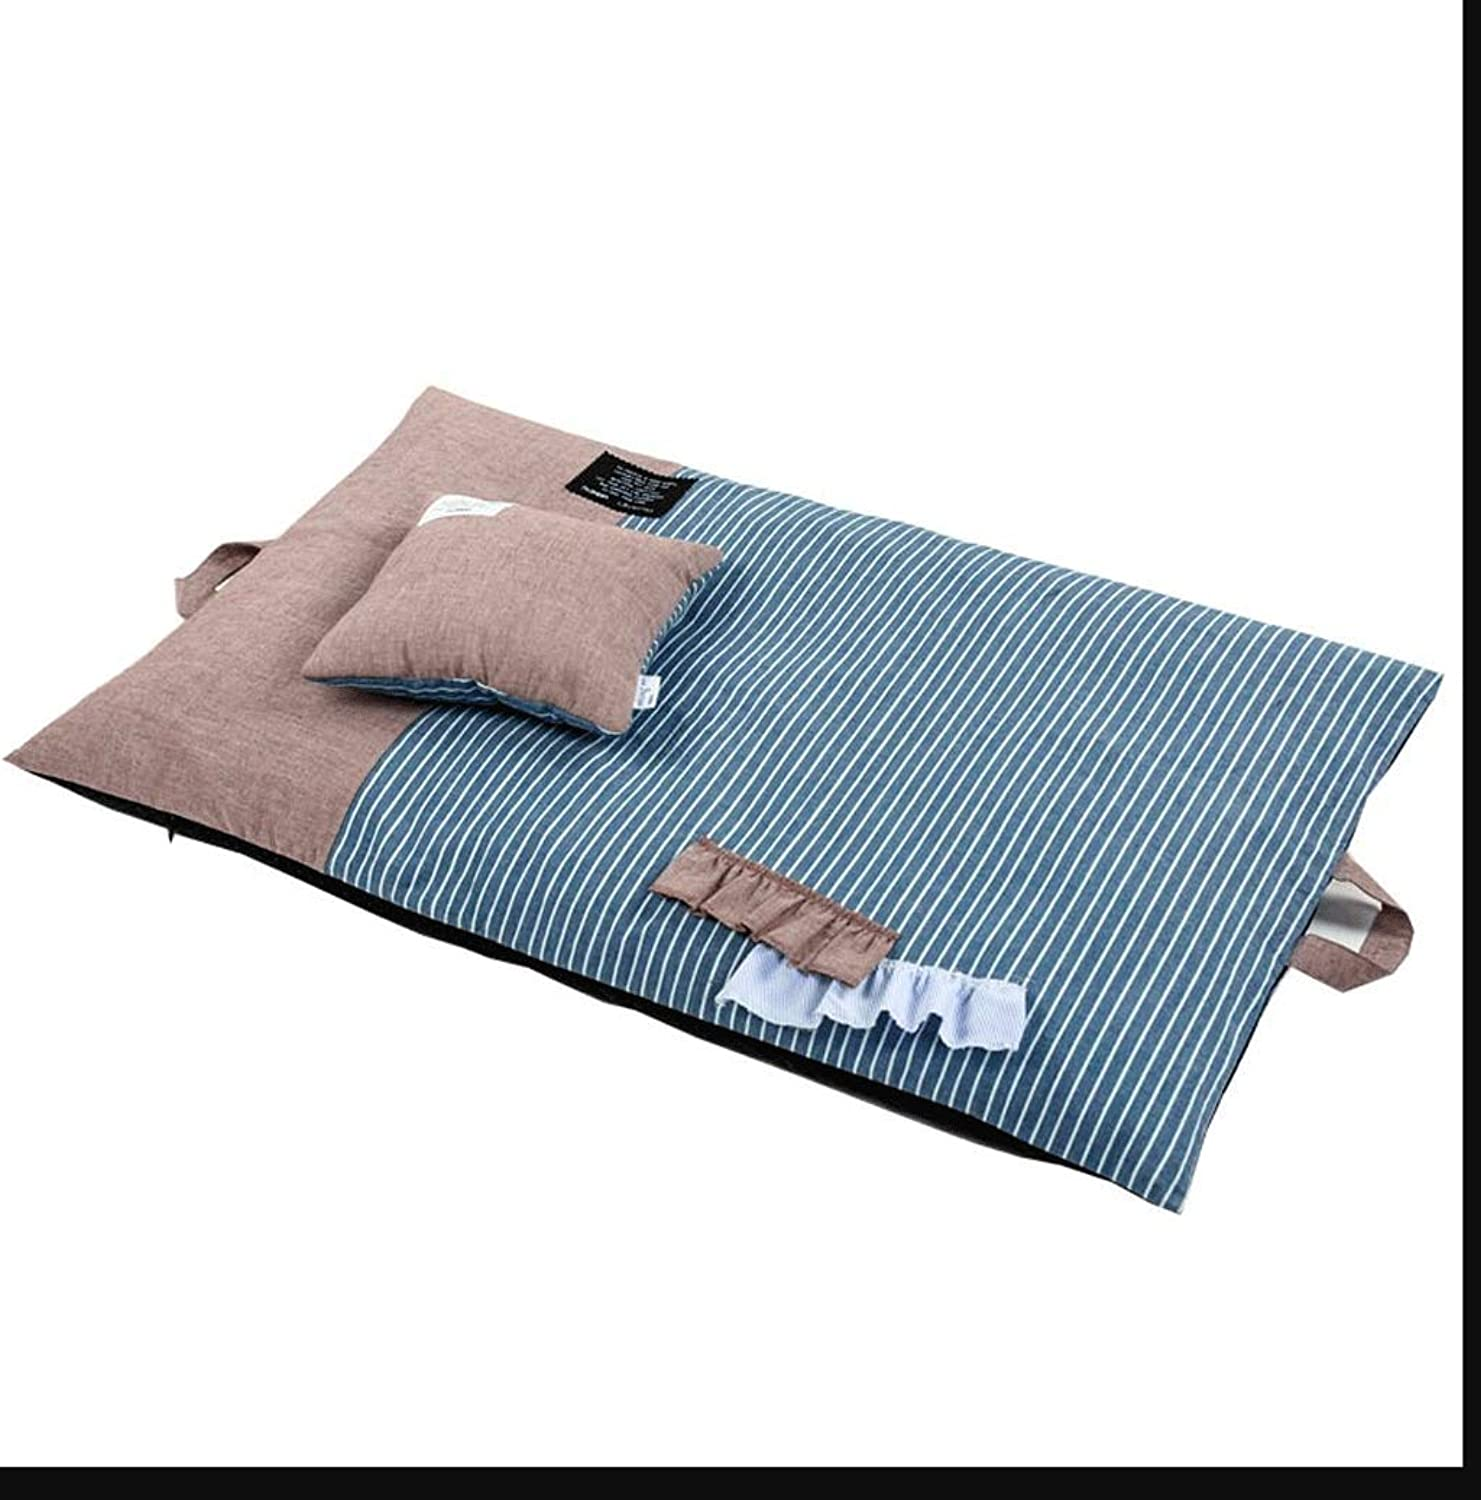 Hongyan Pet Beds Square Foldable bluee Striped Pet Nest Fully Removable And Washable Four Seasons Universal gold Hair Keji Sleeping Mat Pet Bed A+ (color   BROWN, Size   S (79x50CM))